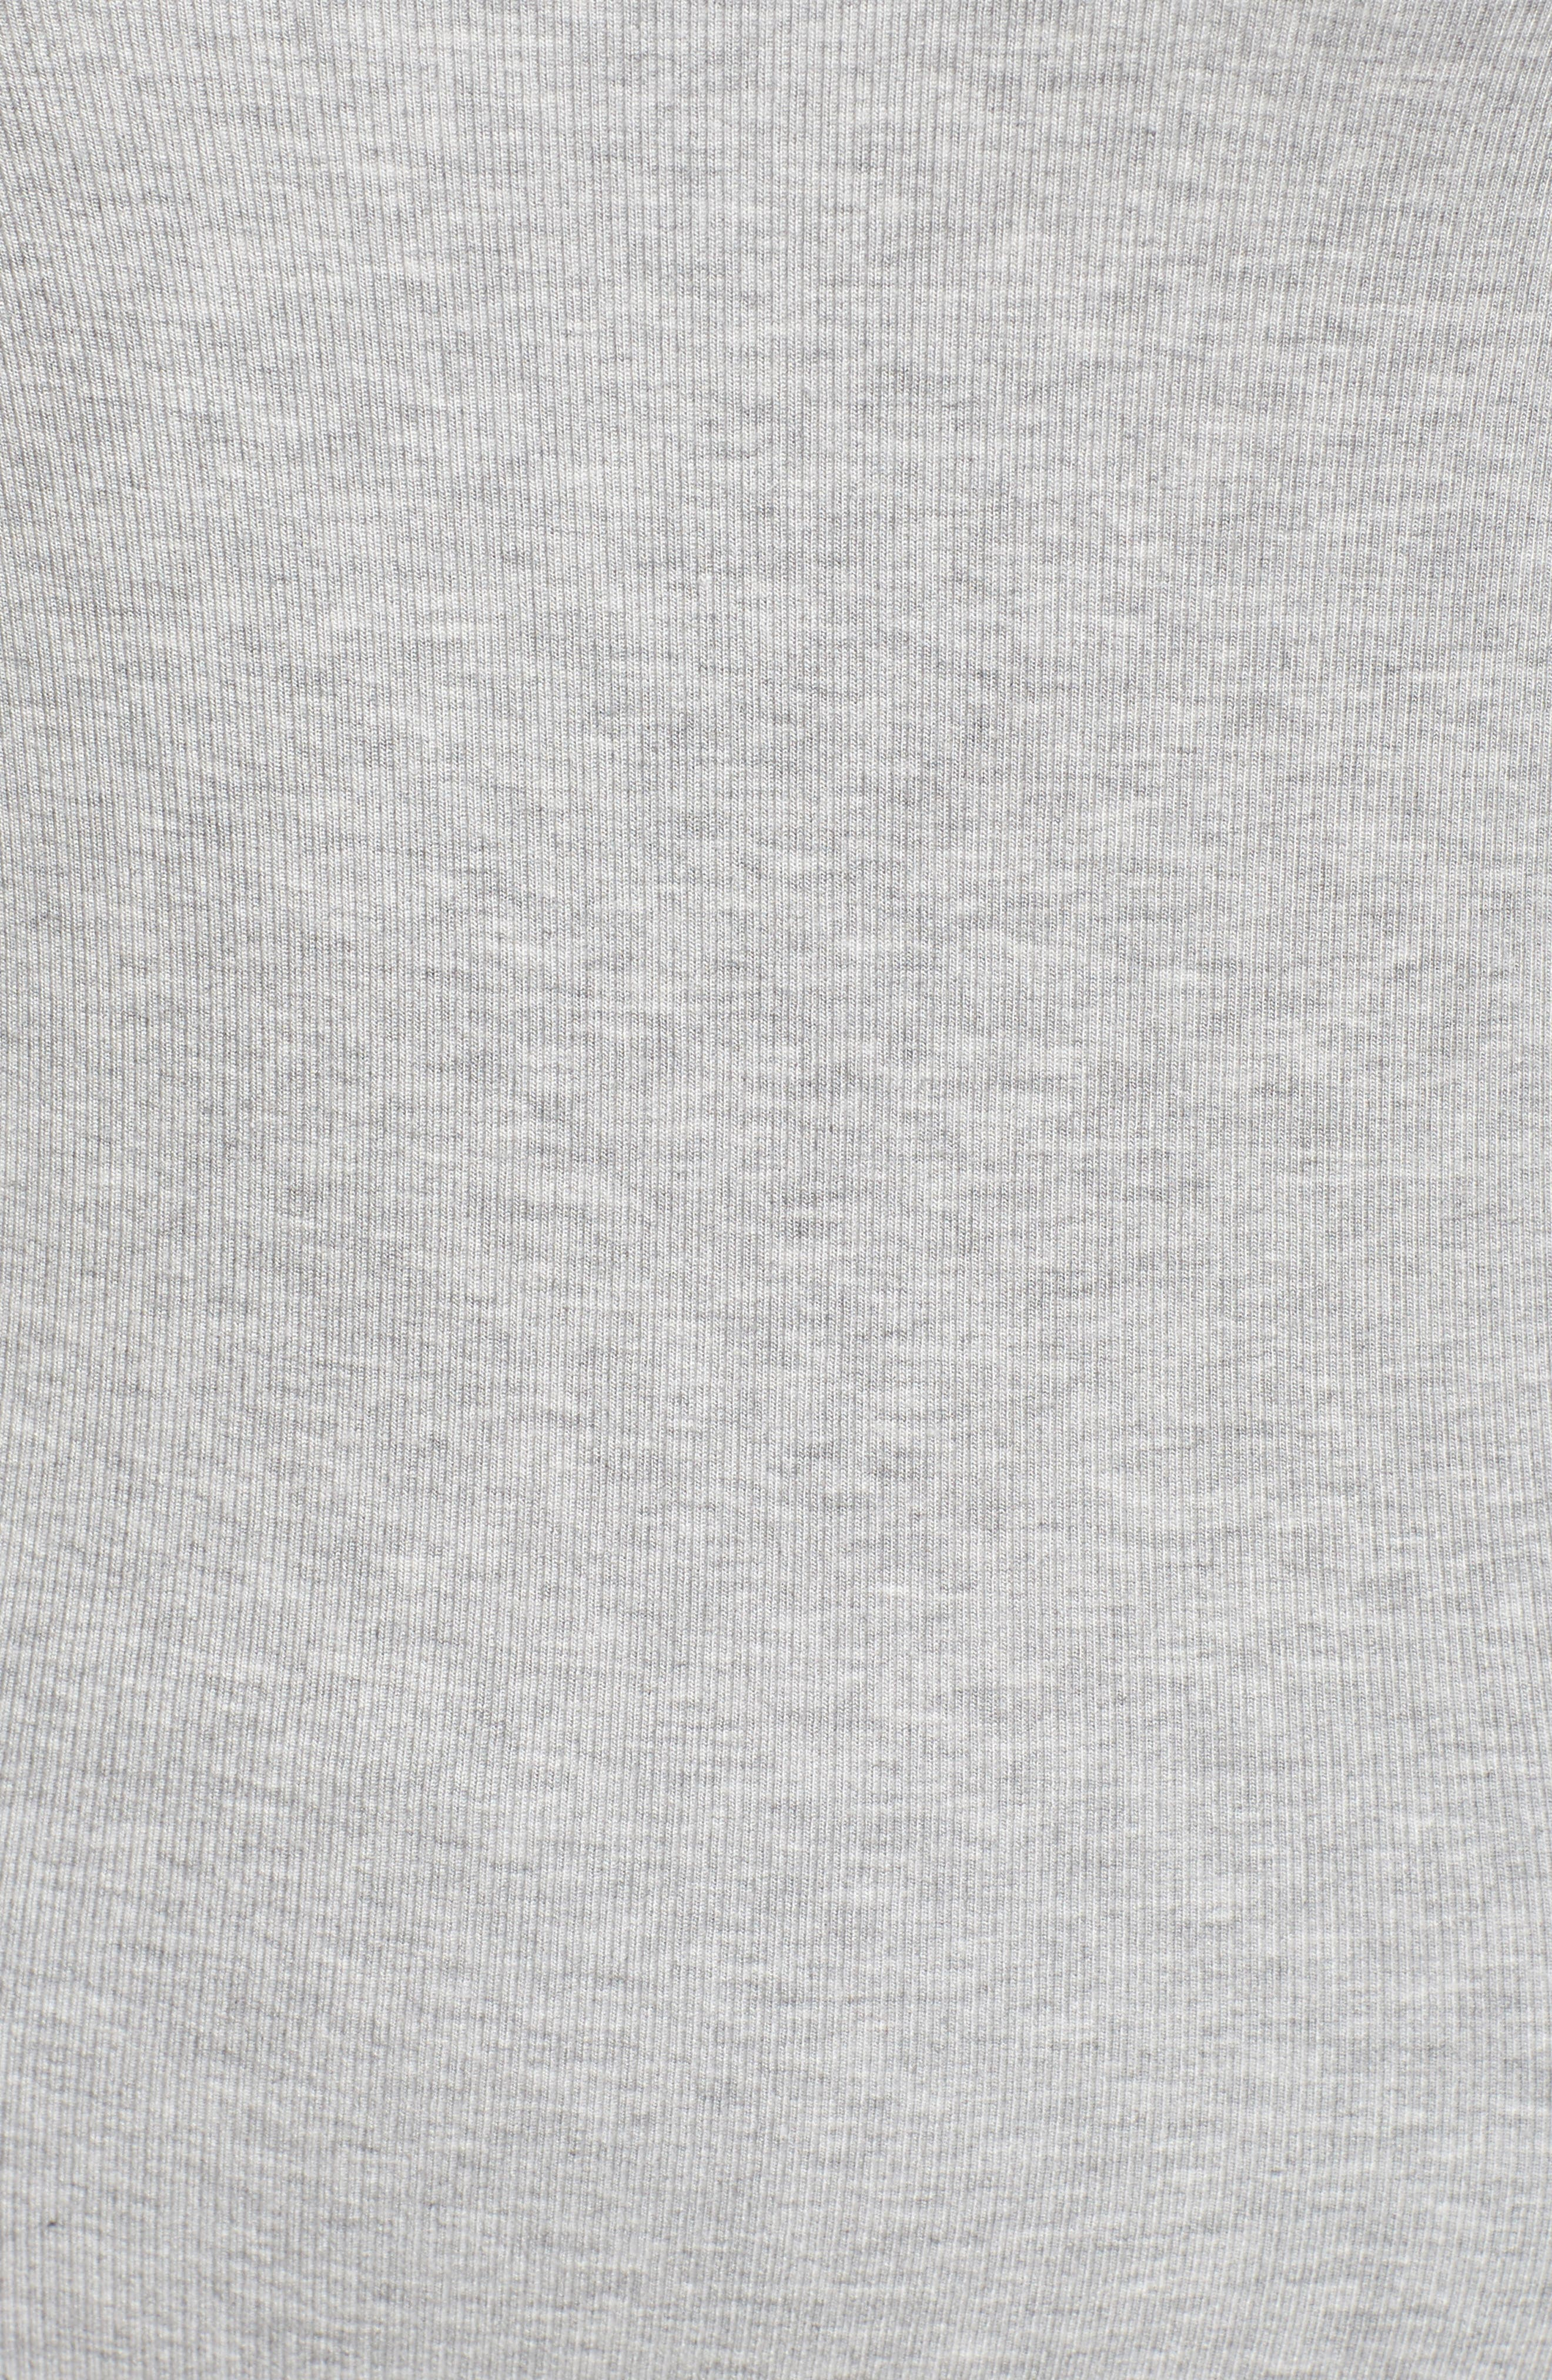 Alley Tee,                             Alternate thumbnail 6, color,                             Light Heather Grey